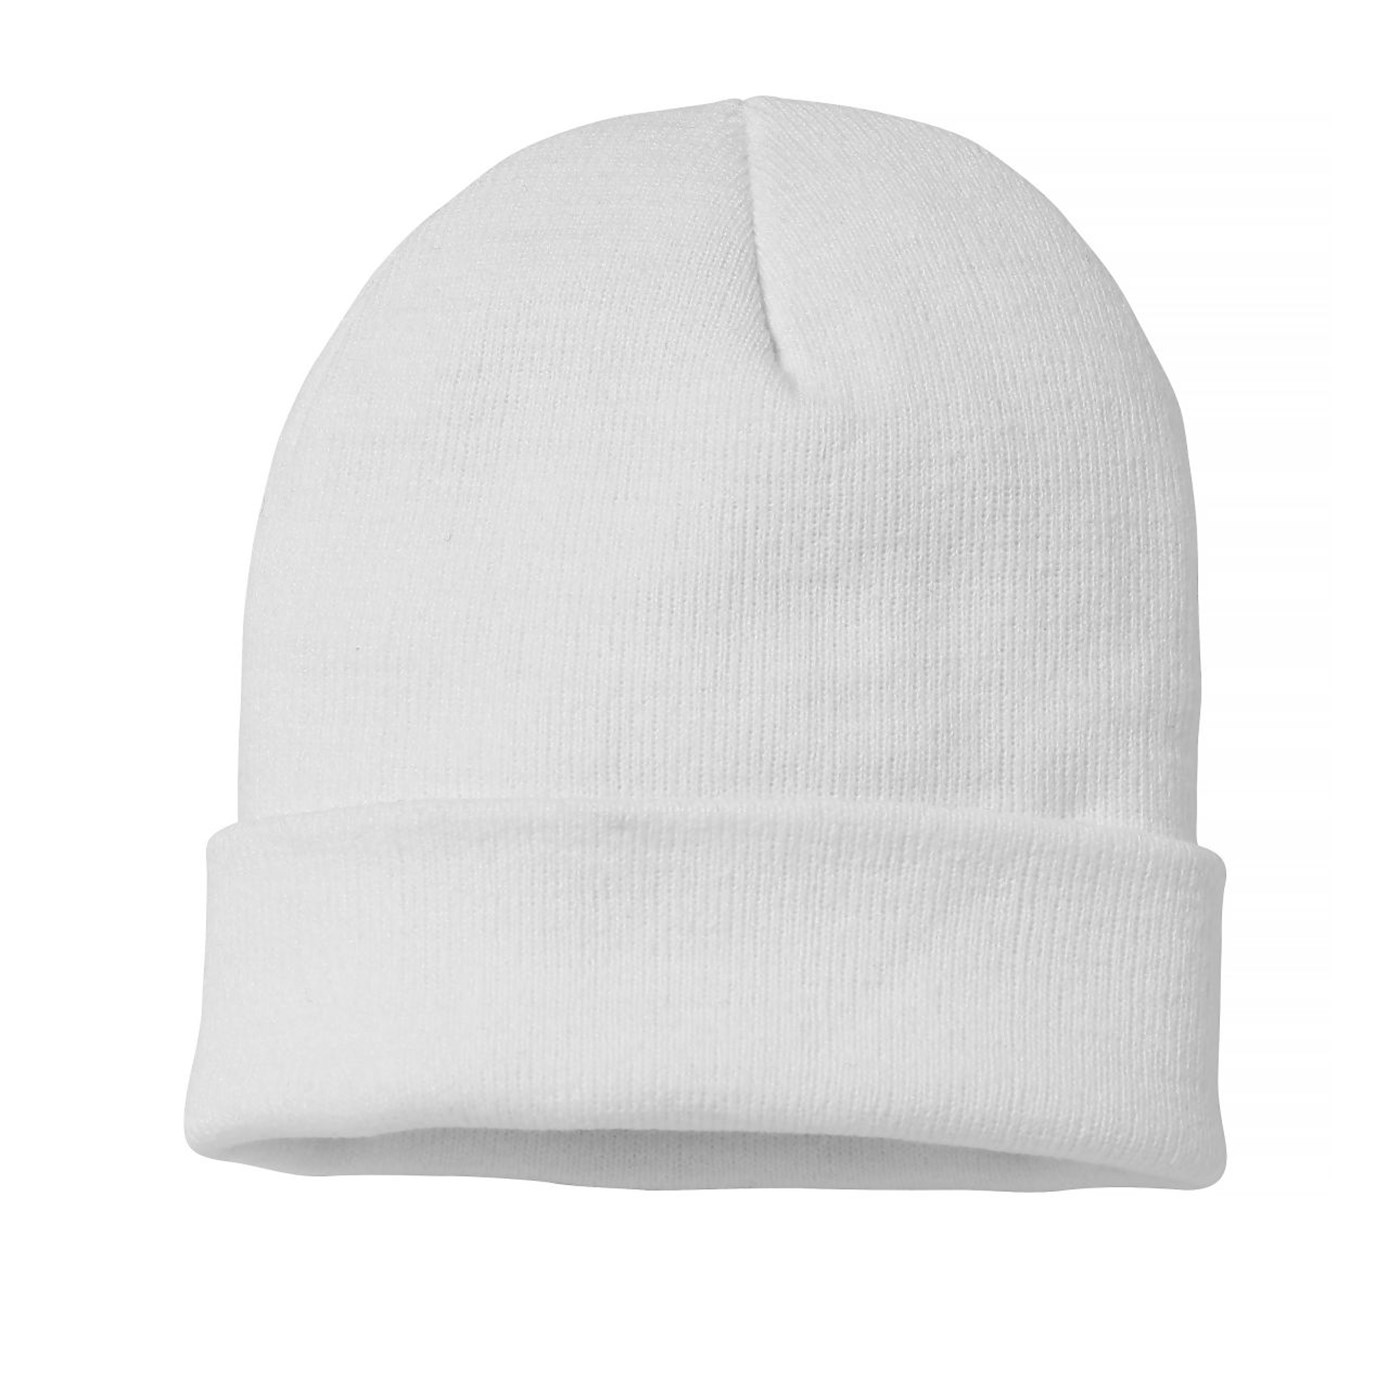 a01a74a5569 Nutshell Adult s Knitted Turn-Up Beanie Hat NS001